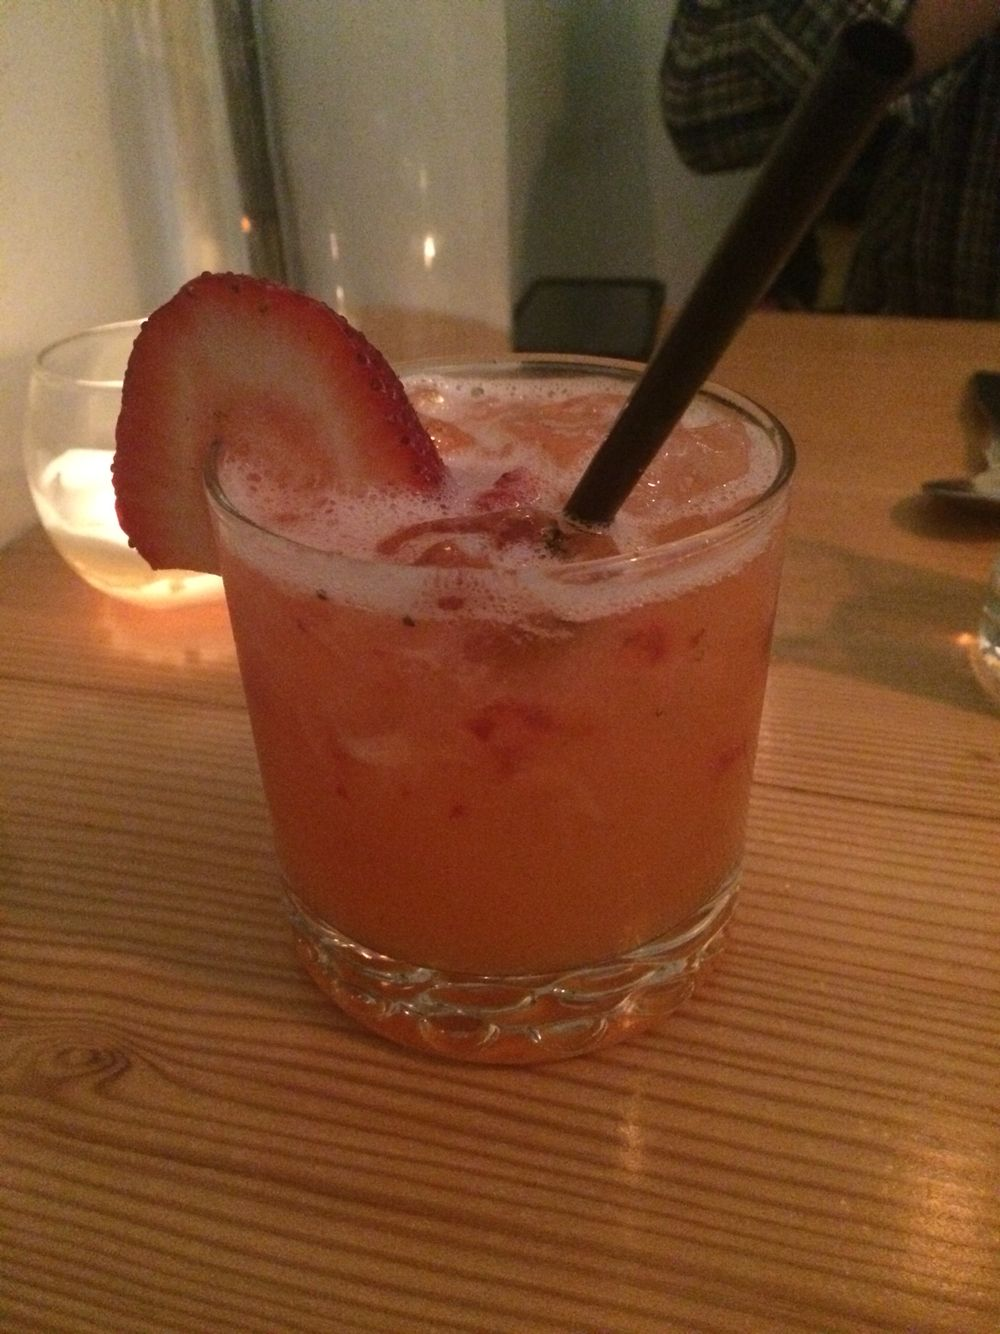 A strawberry tequila drink. Only time I'll drink tequila.